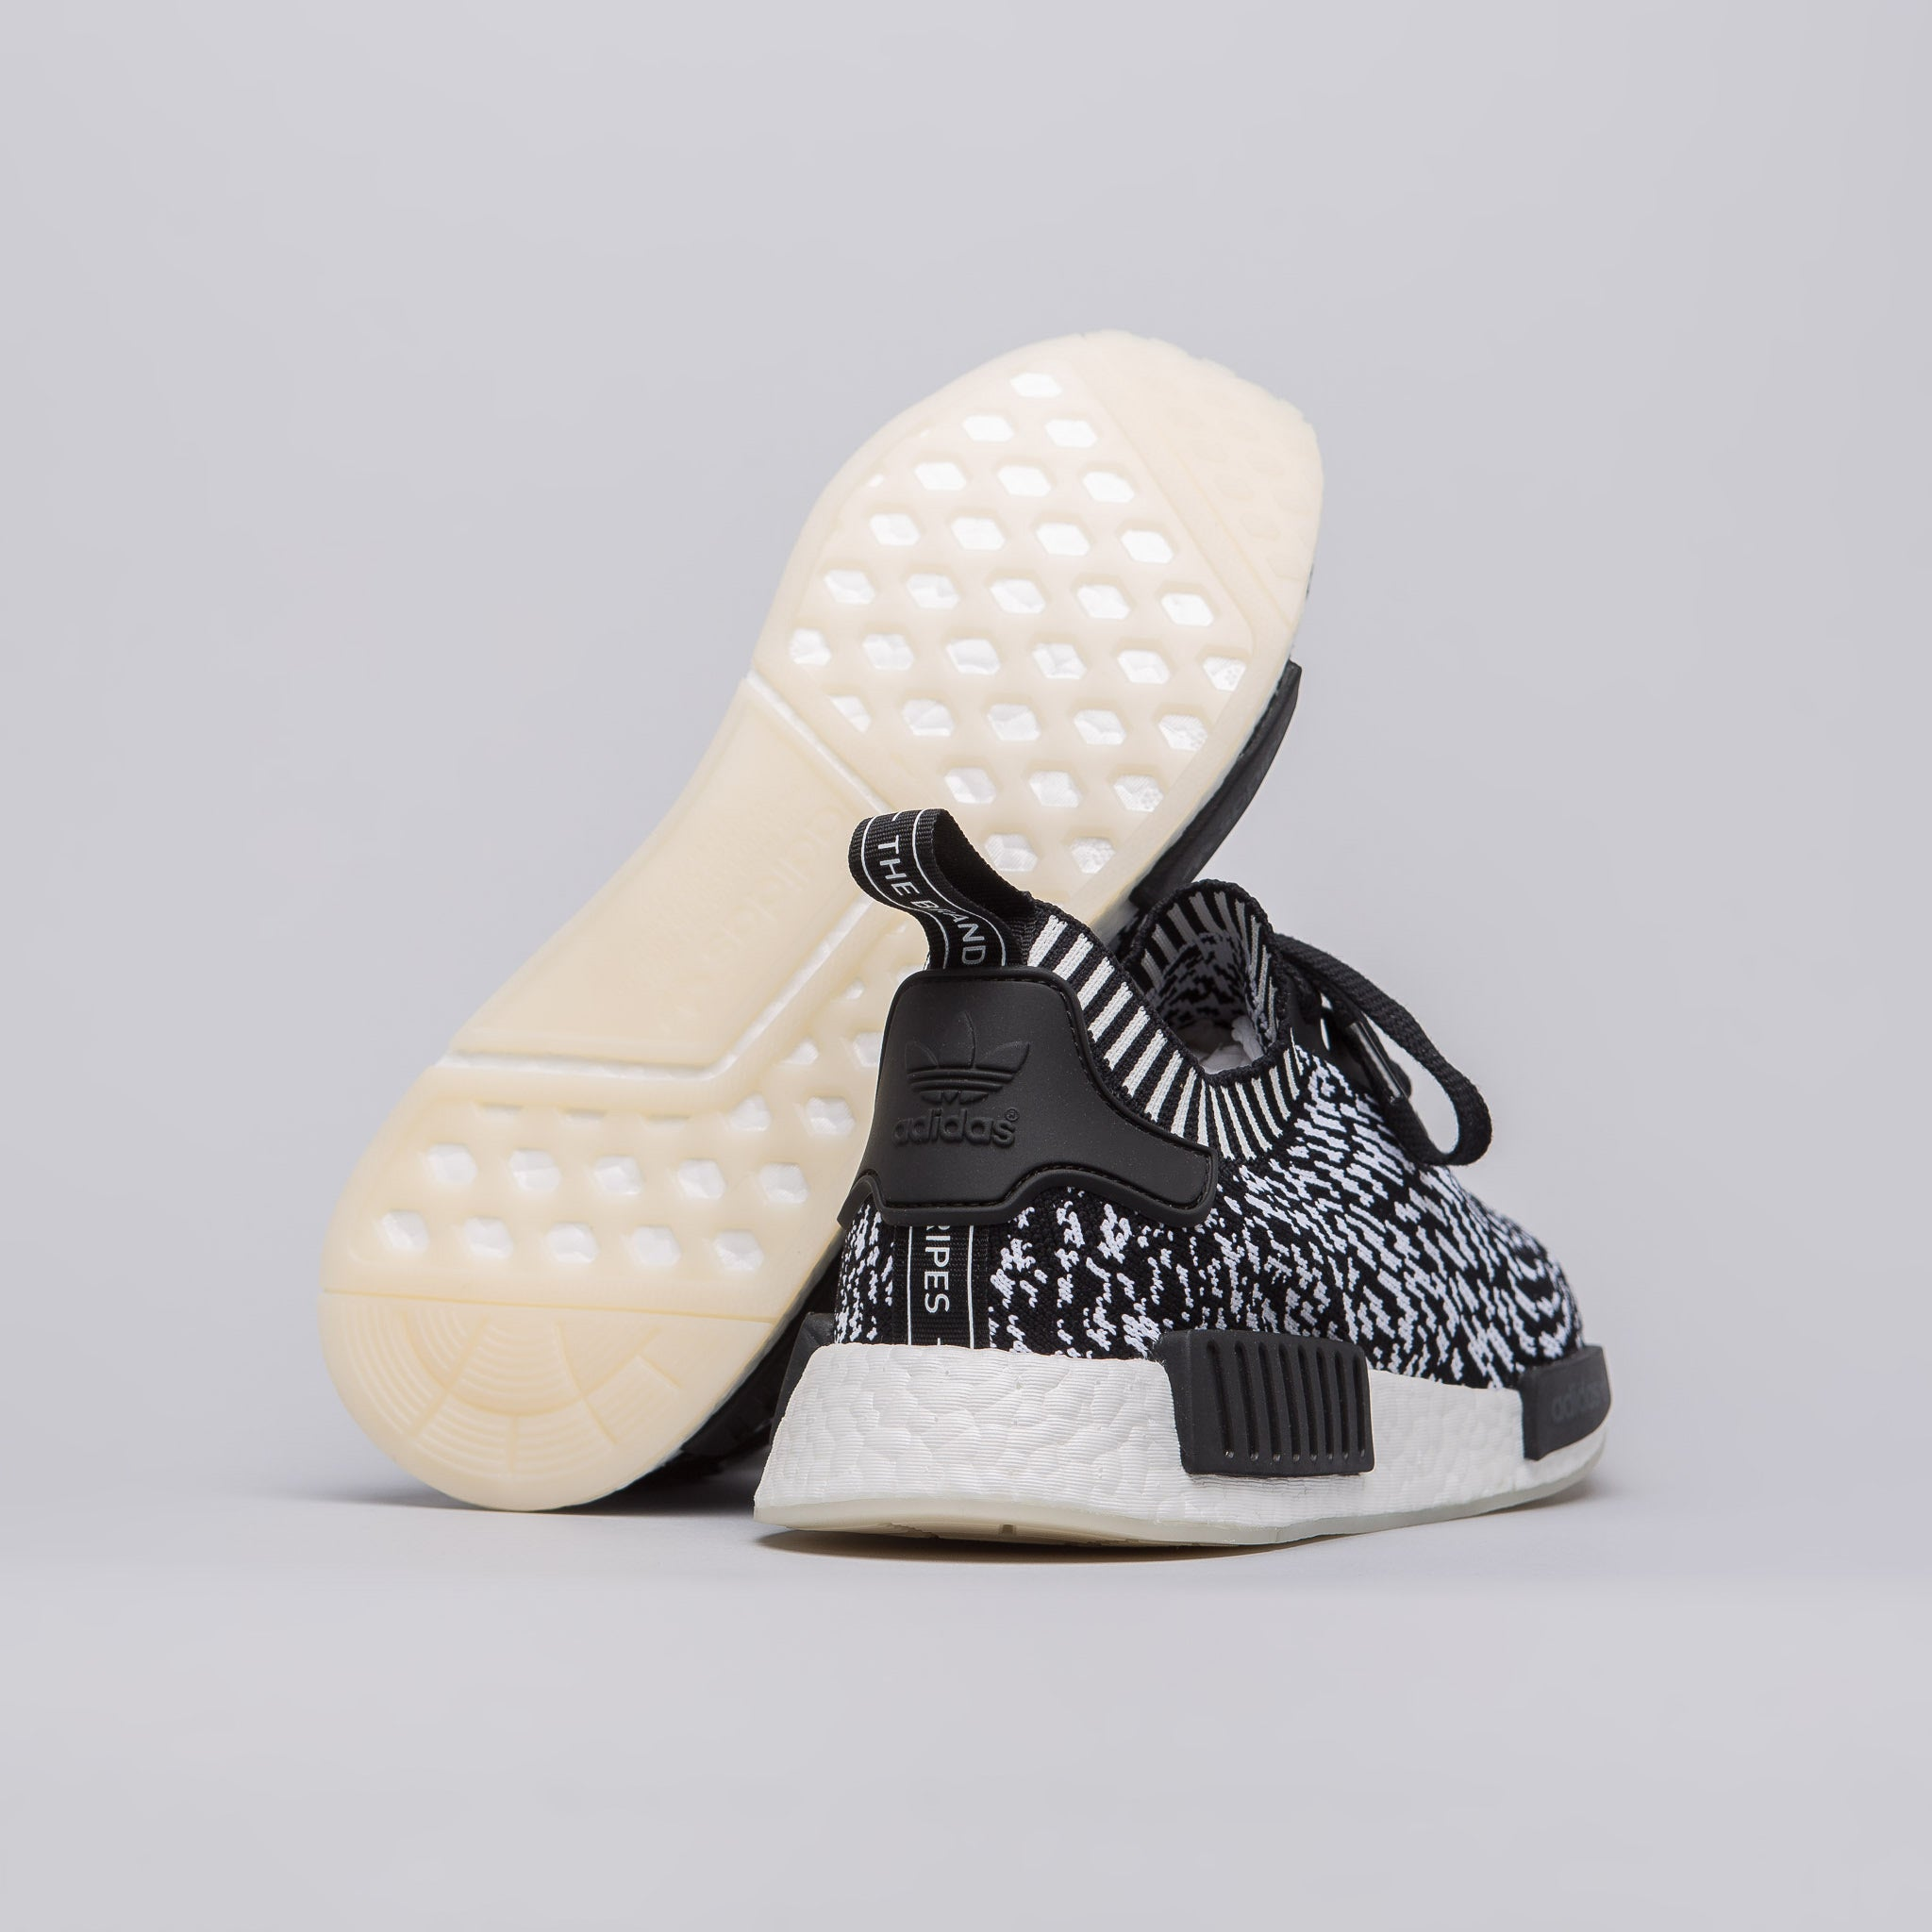 NMD R1 GLITCH (GREY)